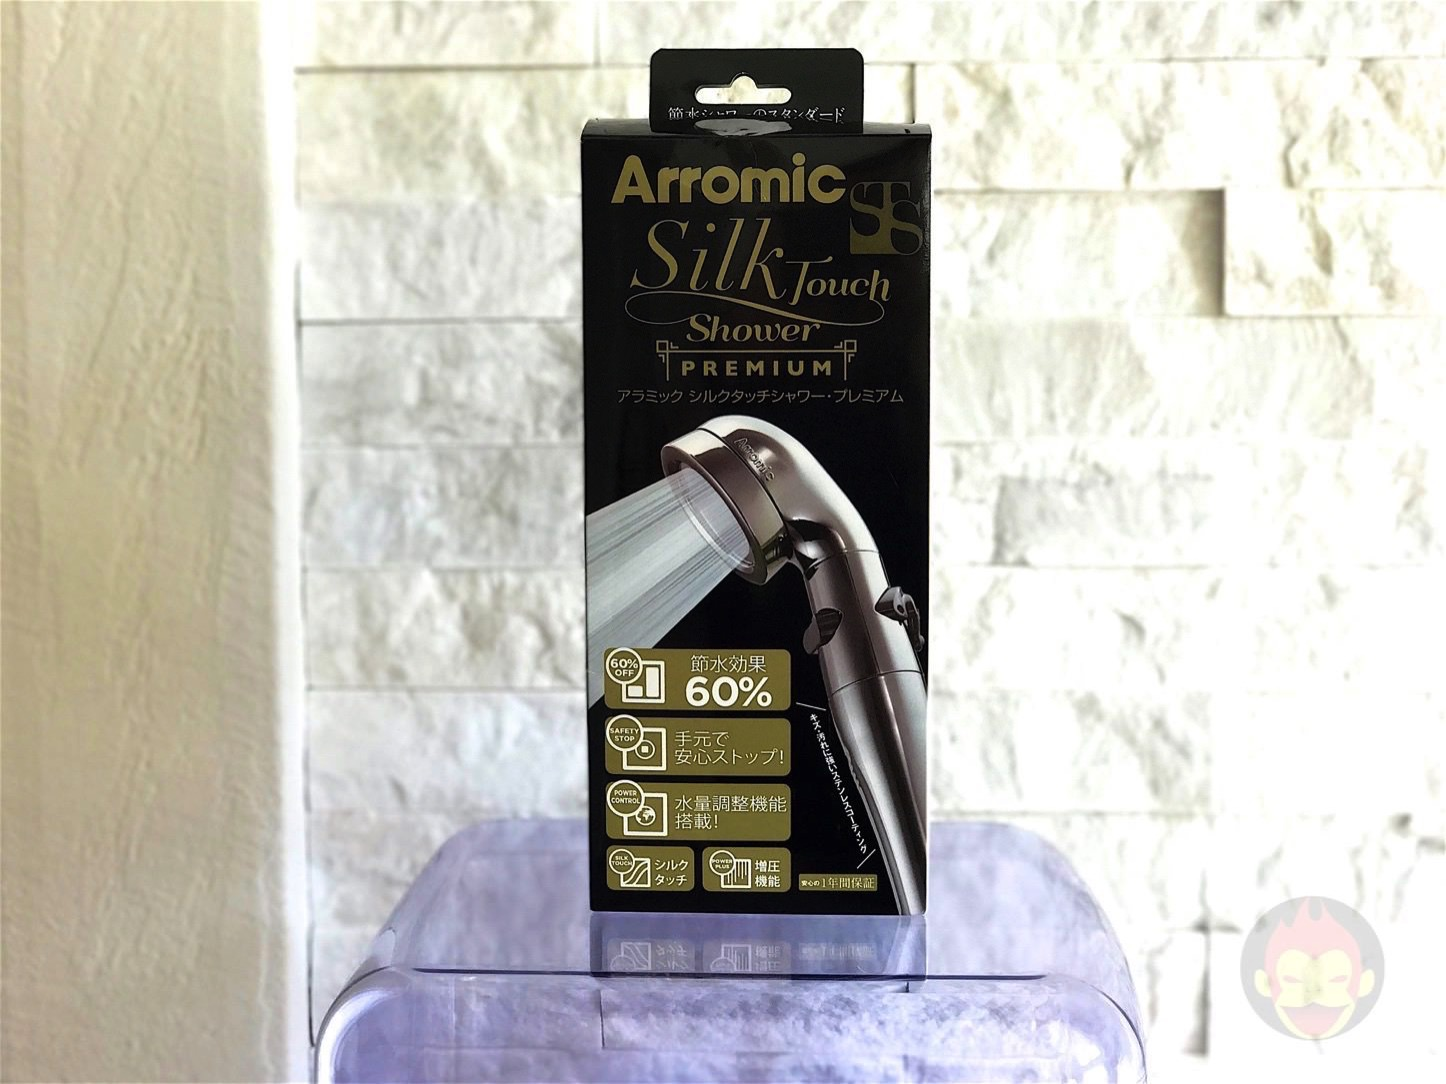 Arromic Slik Touch Shower Premium